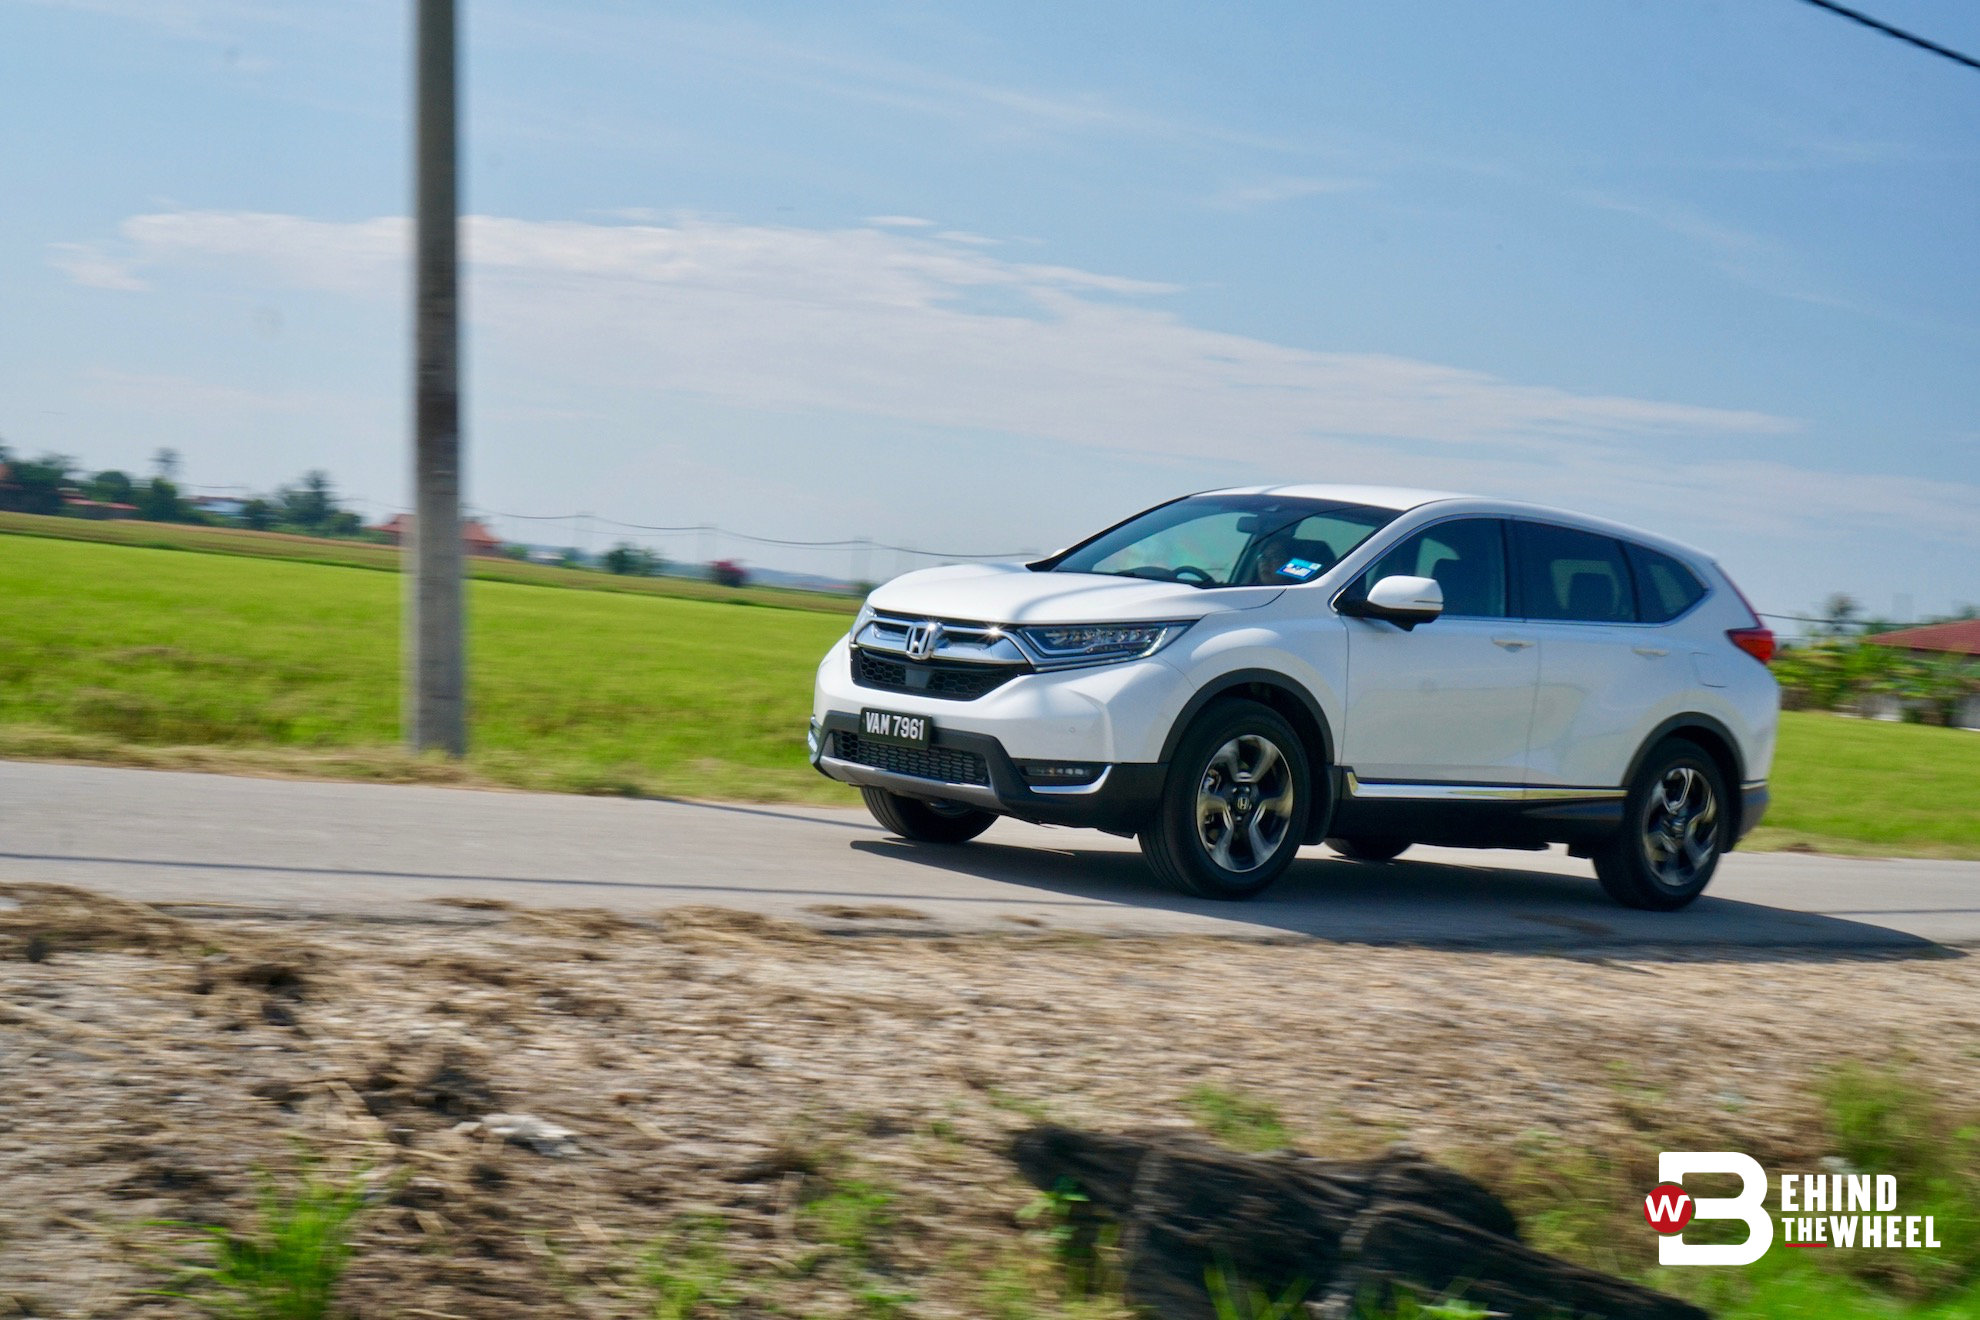 Honda CR-V 1.5 TC-P Review: Plenty Of Sense To Get Honda's Latest SUV